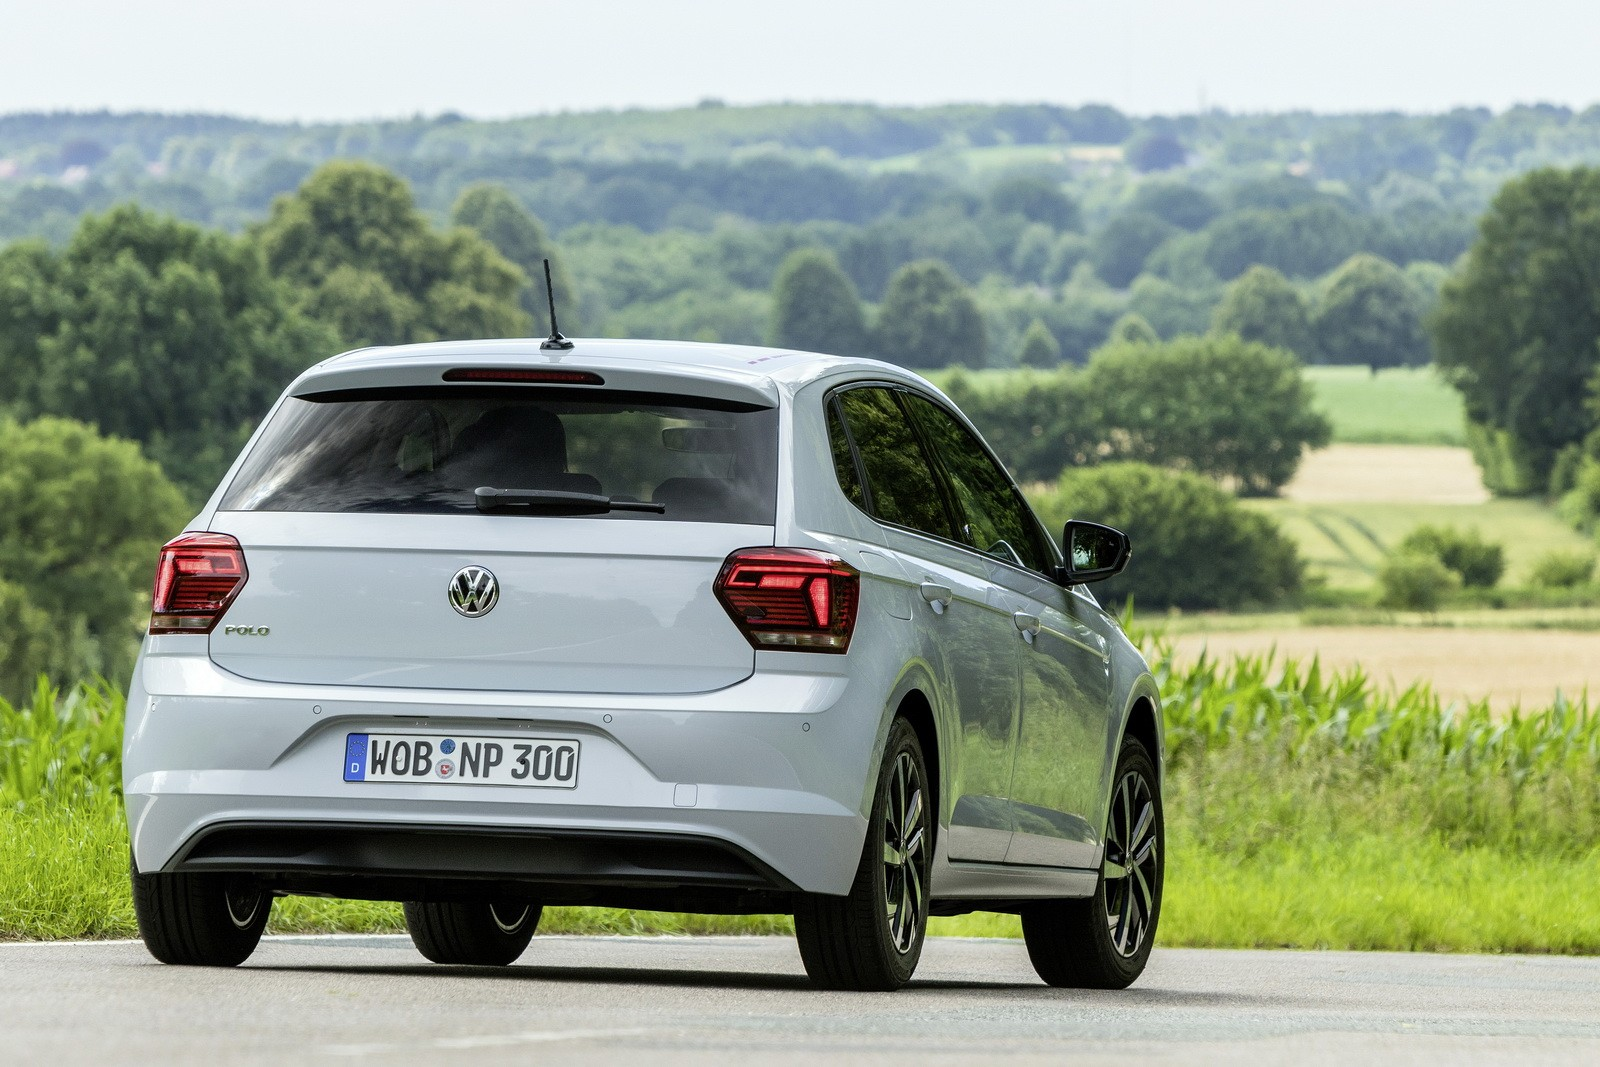 2018 Volkswagen Polo Beats Detailed In New Photos And